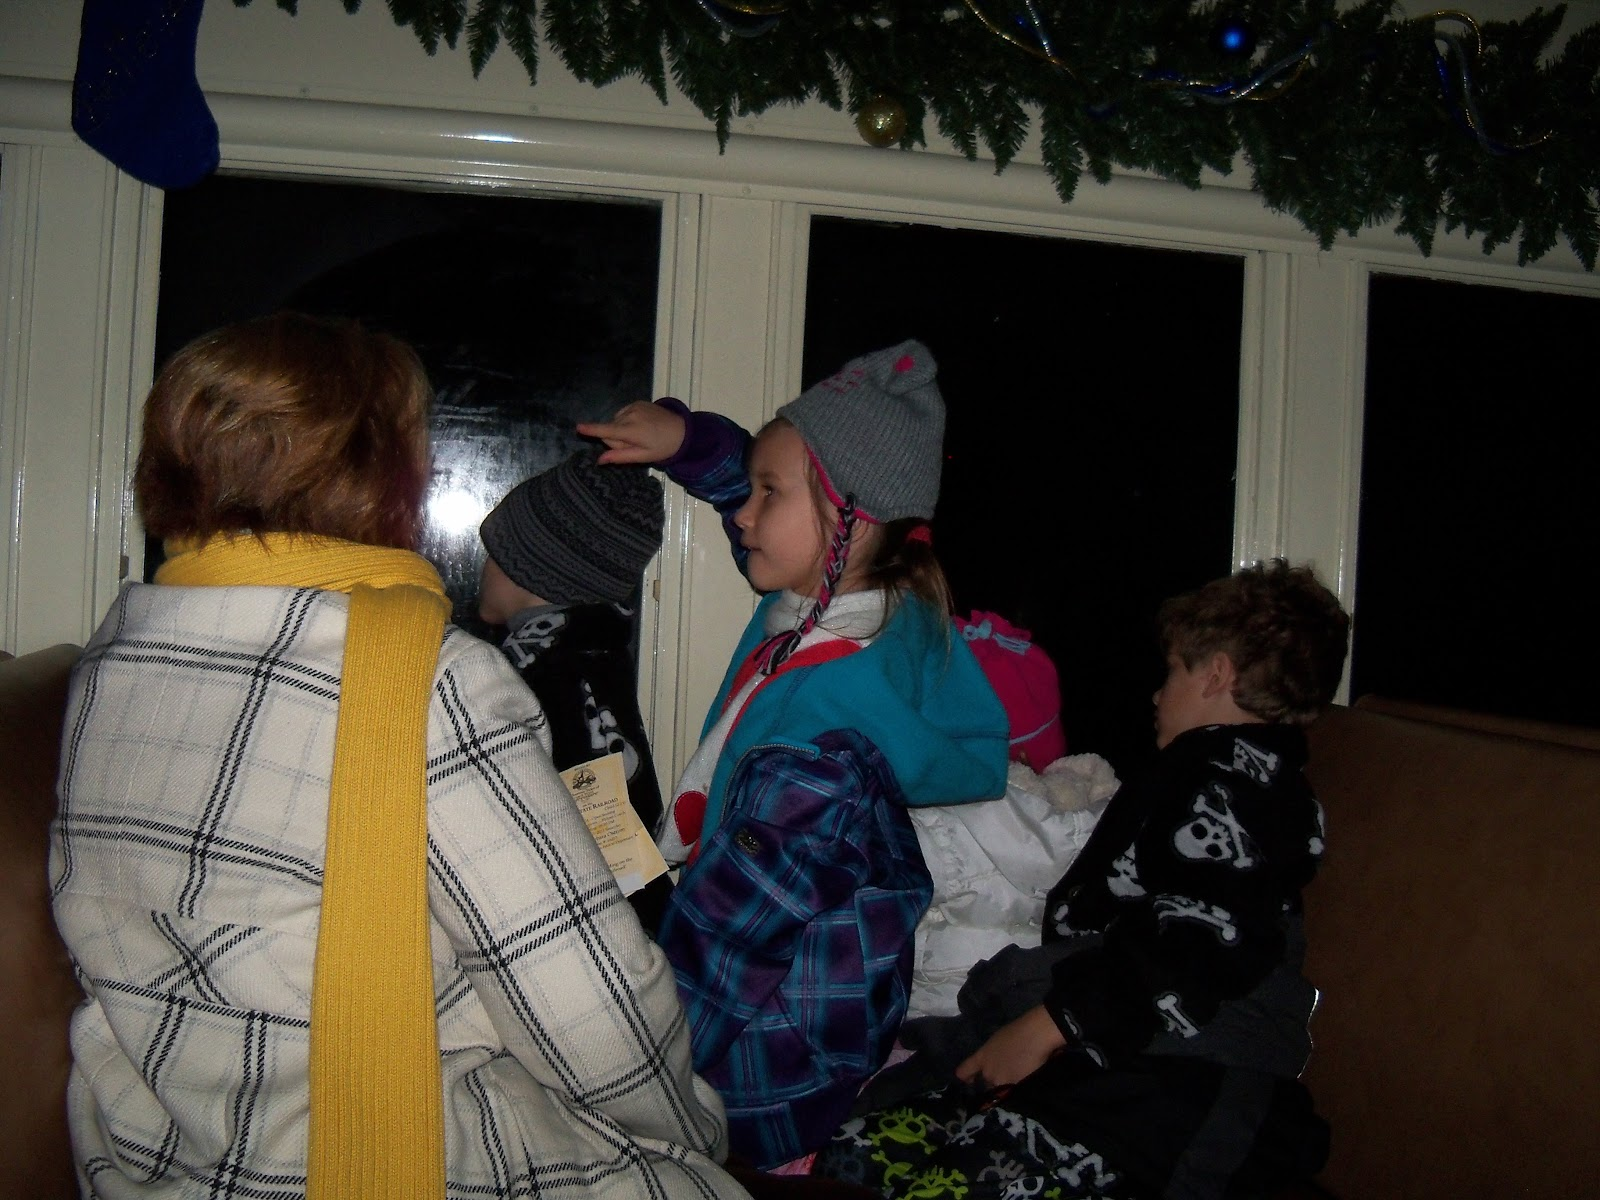 Polar Express Christmas Train 2011 - 115_0958.JPG